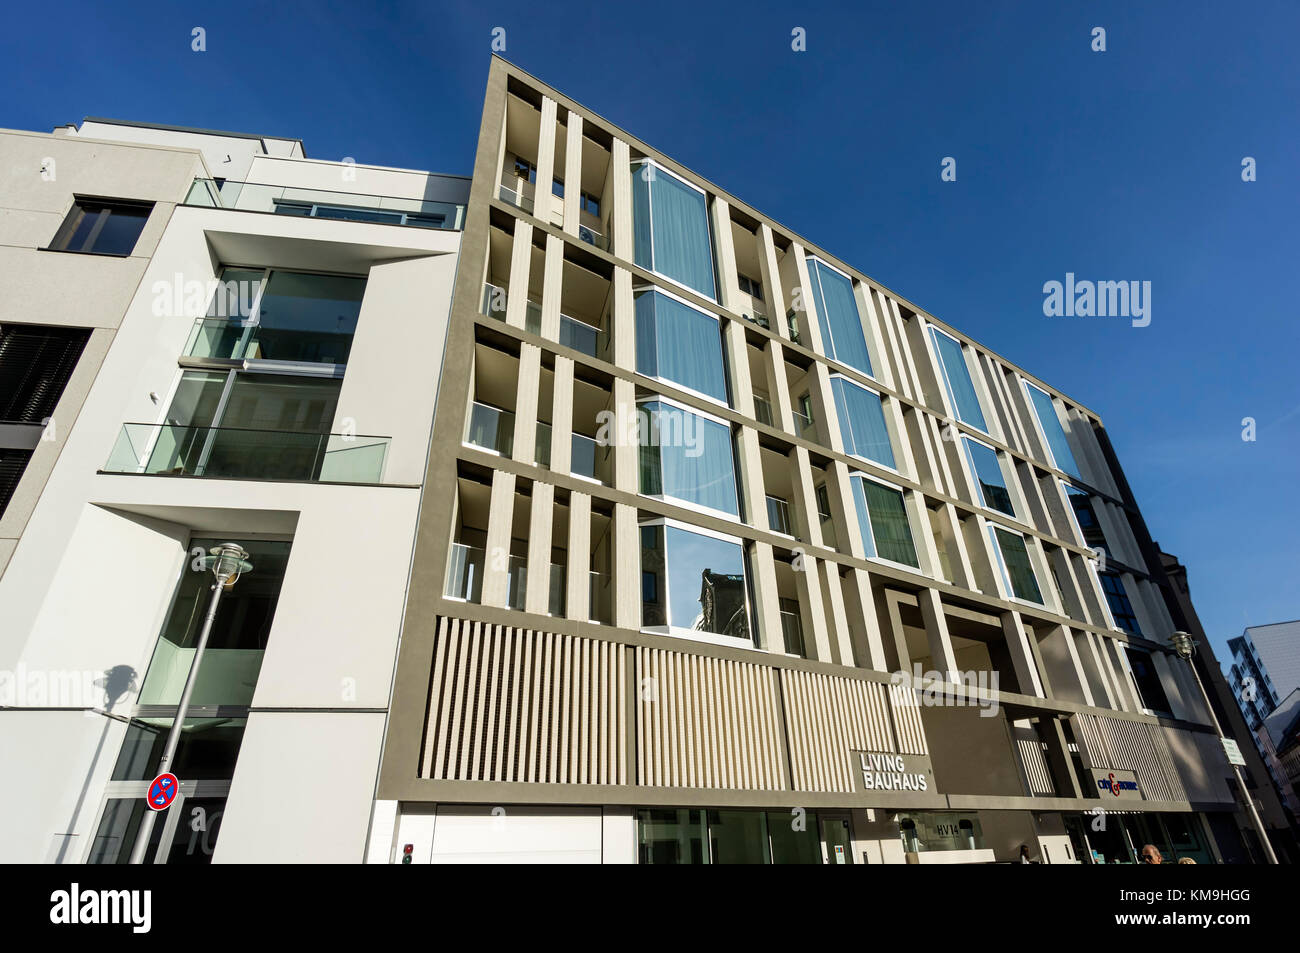 Bauhaus Steglitz bauhaus berlin stock photos bauhaus berlin stock images alamy